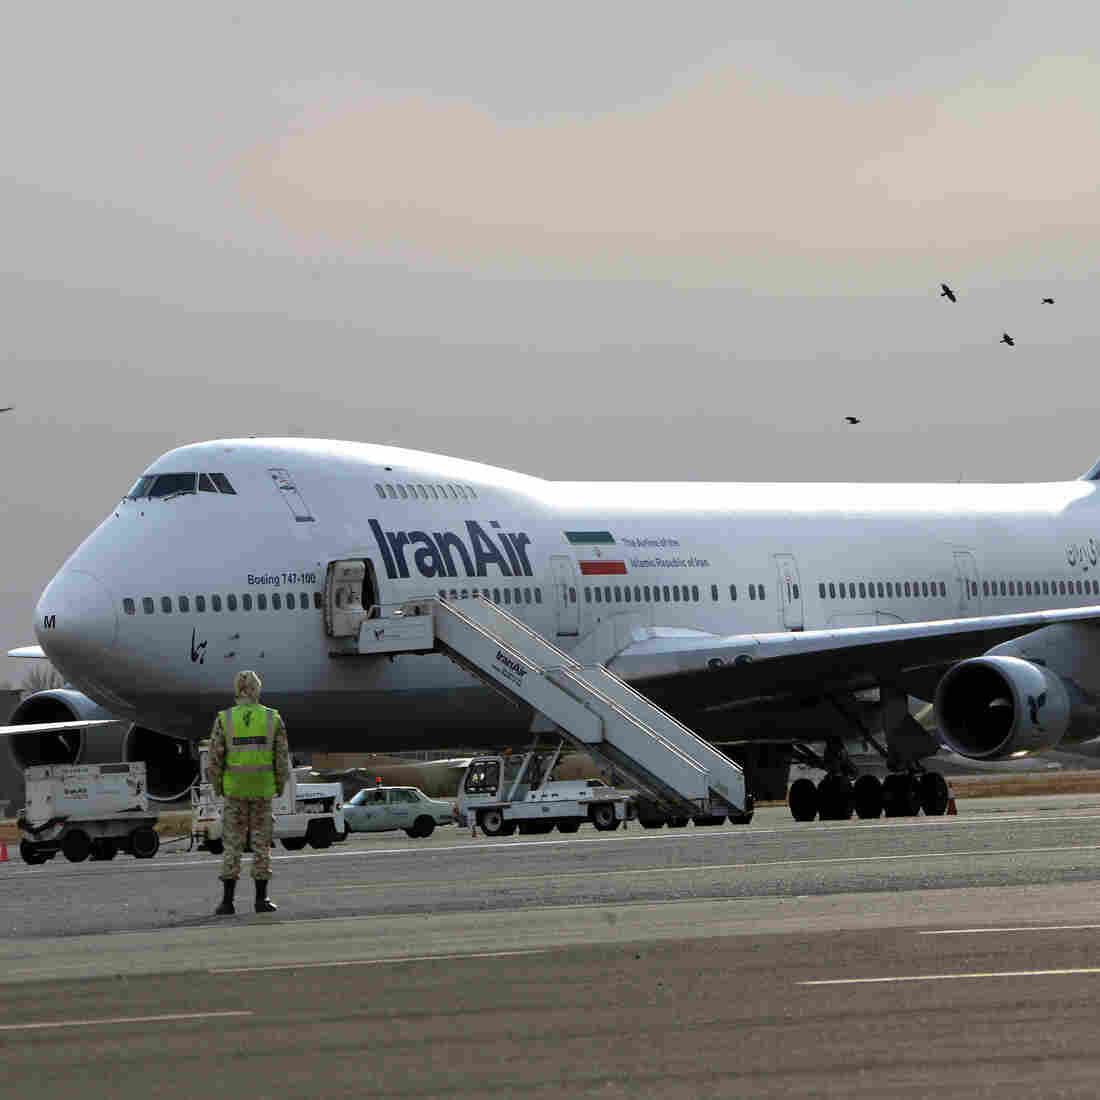 An Iran Air Boeing 747 passenger plane on the tarmac of Mehrabad Airport in Tehran in 2013. Iran bought most of its planes from Boeing before the 1979 Islamic Revolution. The country now has one of the oldest airline fleets in the world. With sanctions lifted, Boeing can once again sell planes to Iran, but the country recently announced a major deal with Airbus.